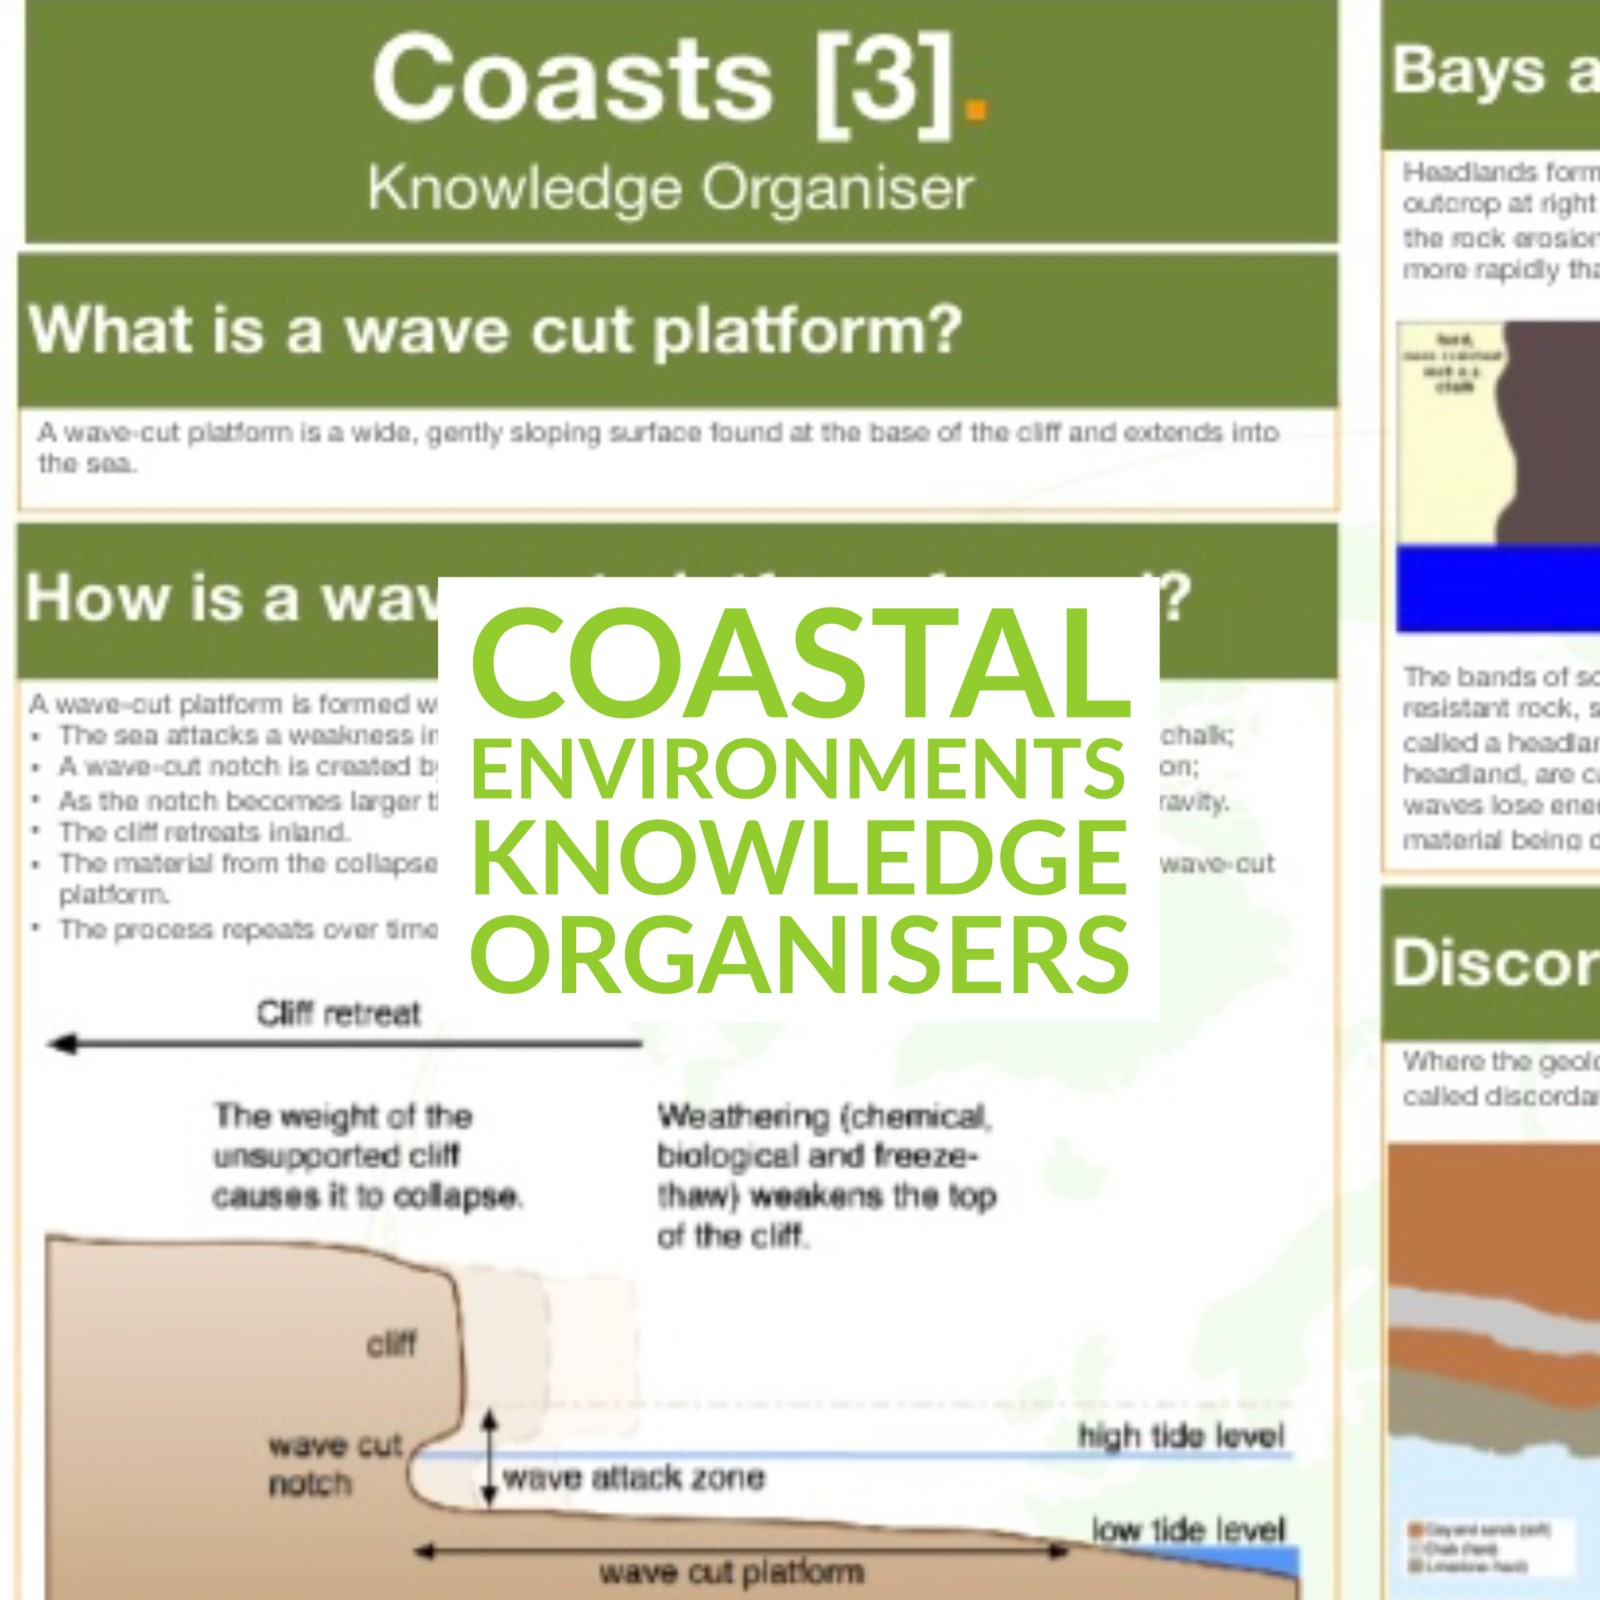 Coastal Environments Knowledge Organisers